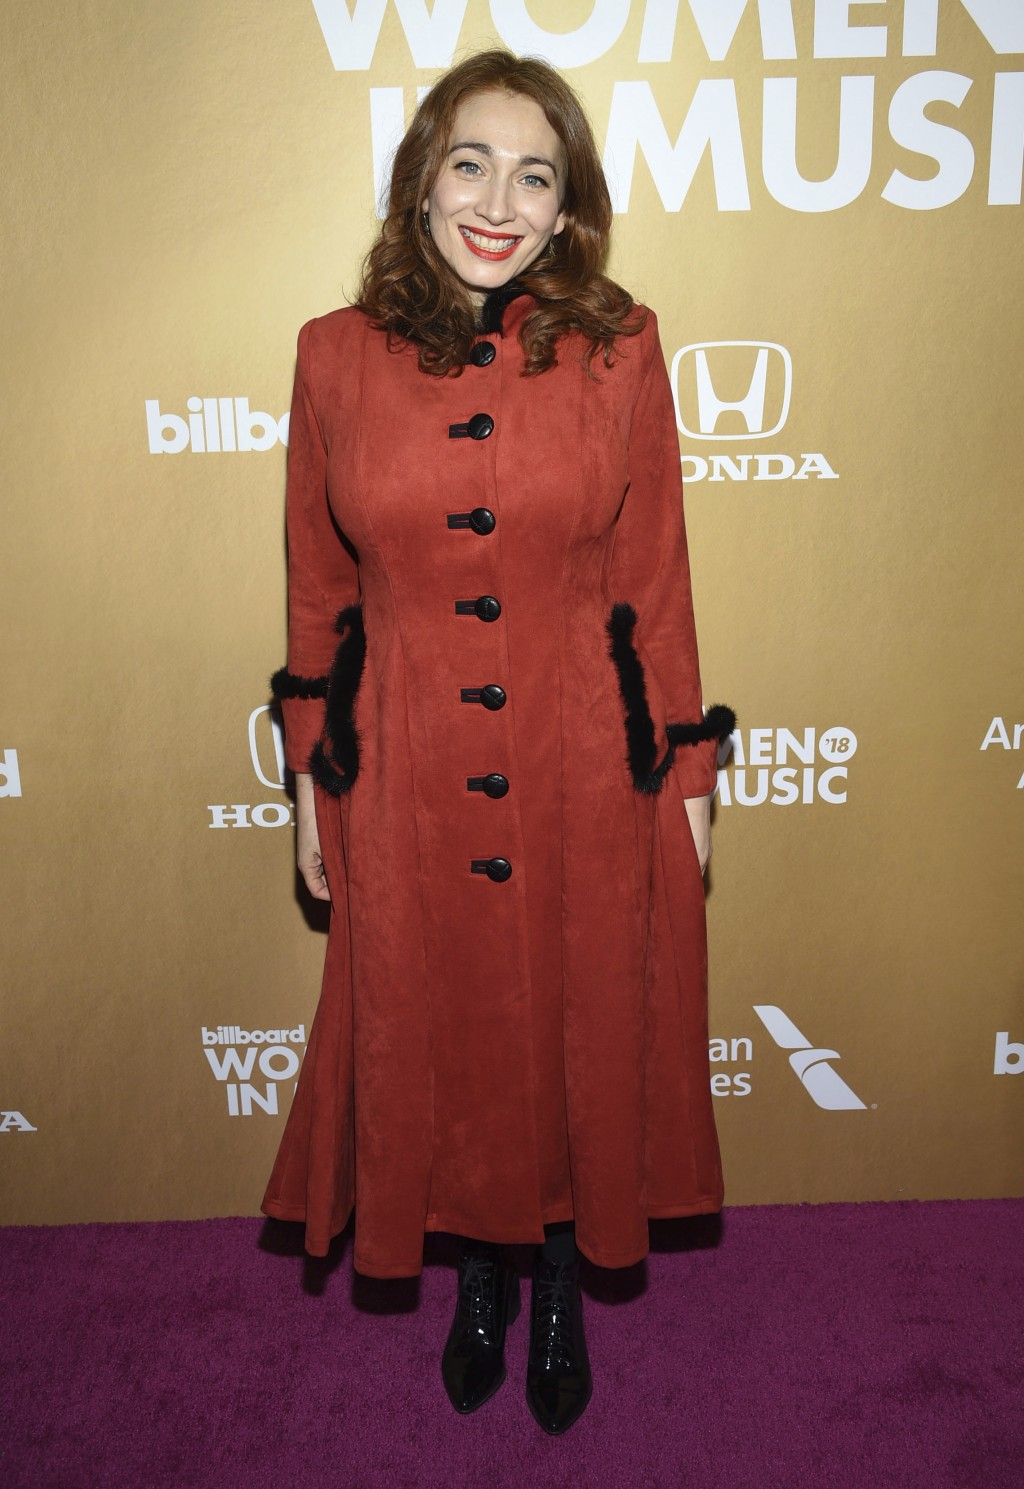 Regina Spektor attends the 13th annual Billboard Women in Music event at Pier 36 on Thursday, Dec. 6, 2018, in New York. (Photo by Evan Agostini/Invis